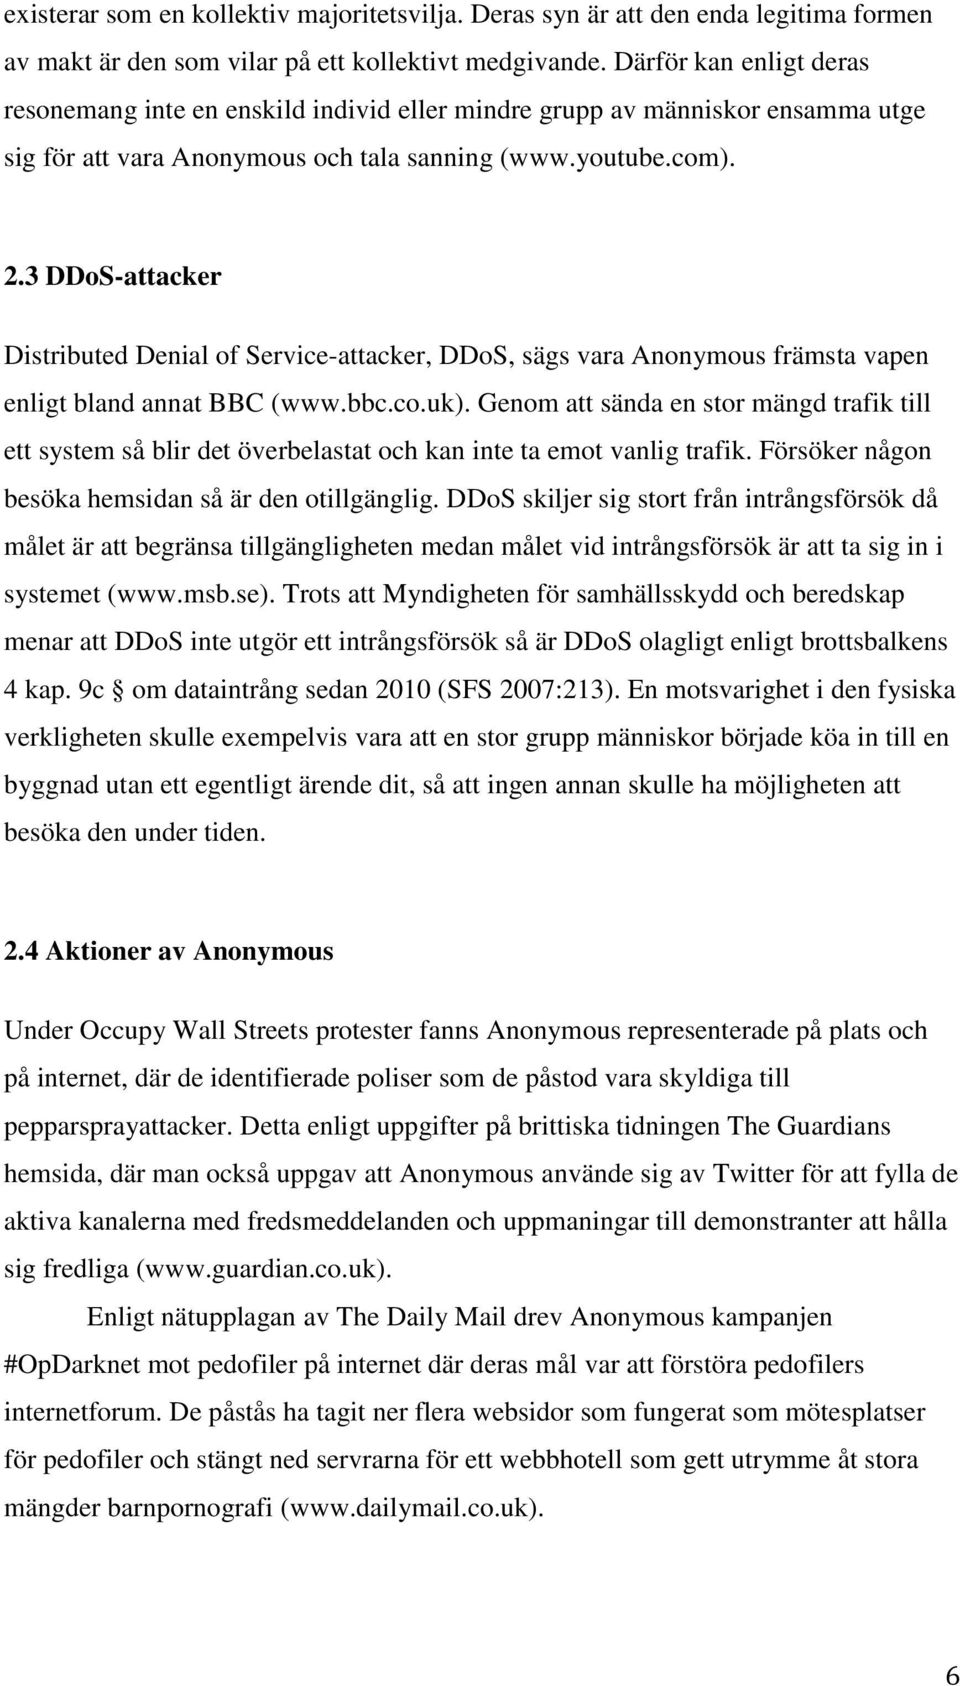 3 DDoS-attacker Distributed Denial of Service-attacker, DDoS, sägs vara Anonymous främsta vapen enligt bland annat BBC (www.bbc.co.uk).